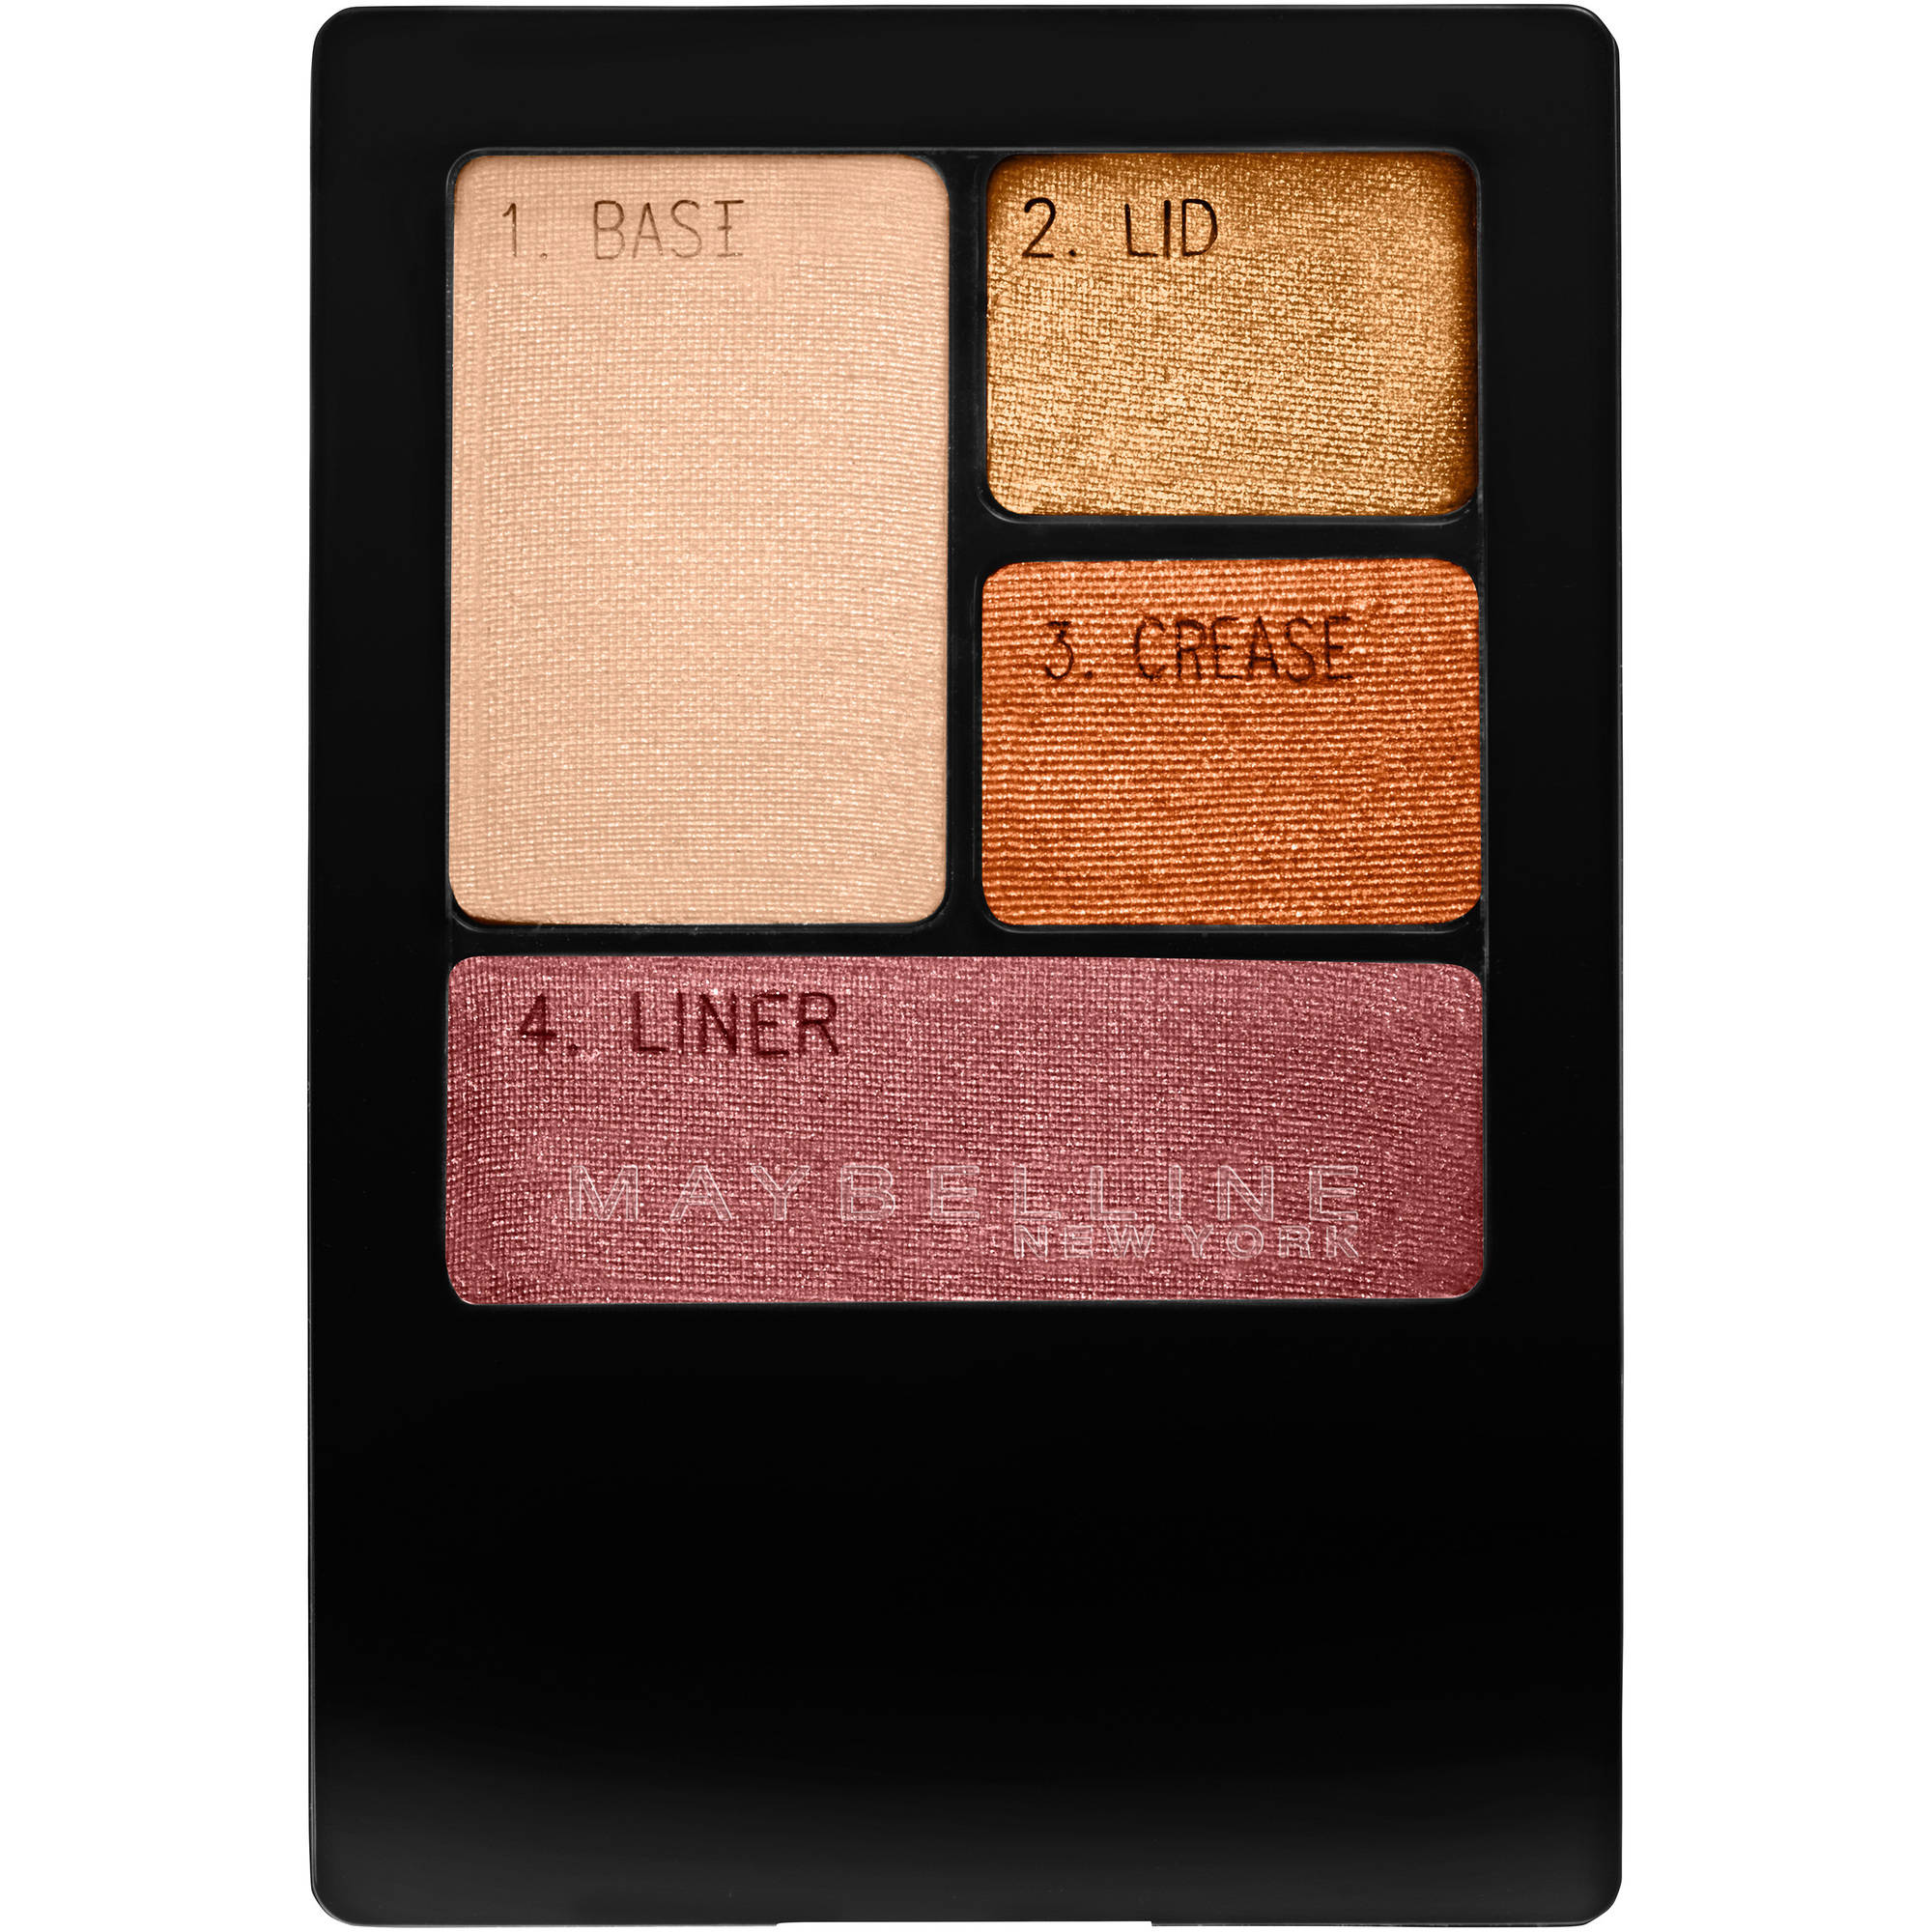 Maybelline New York Expert Wear Eyeshadow Quads, Sunlit Bronze, 0.17 oz